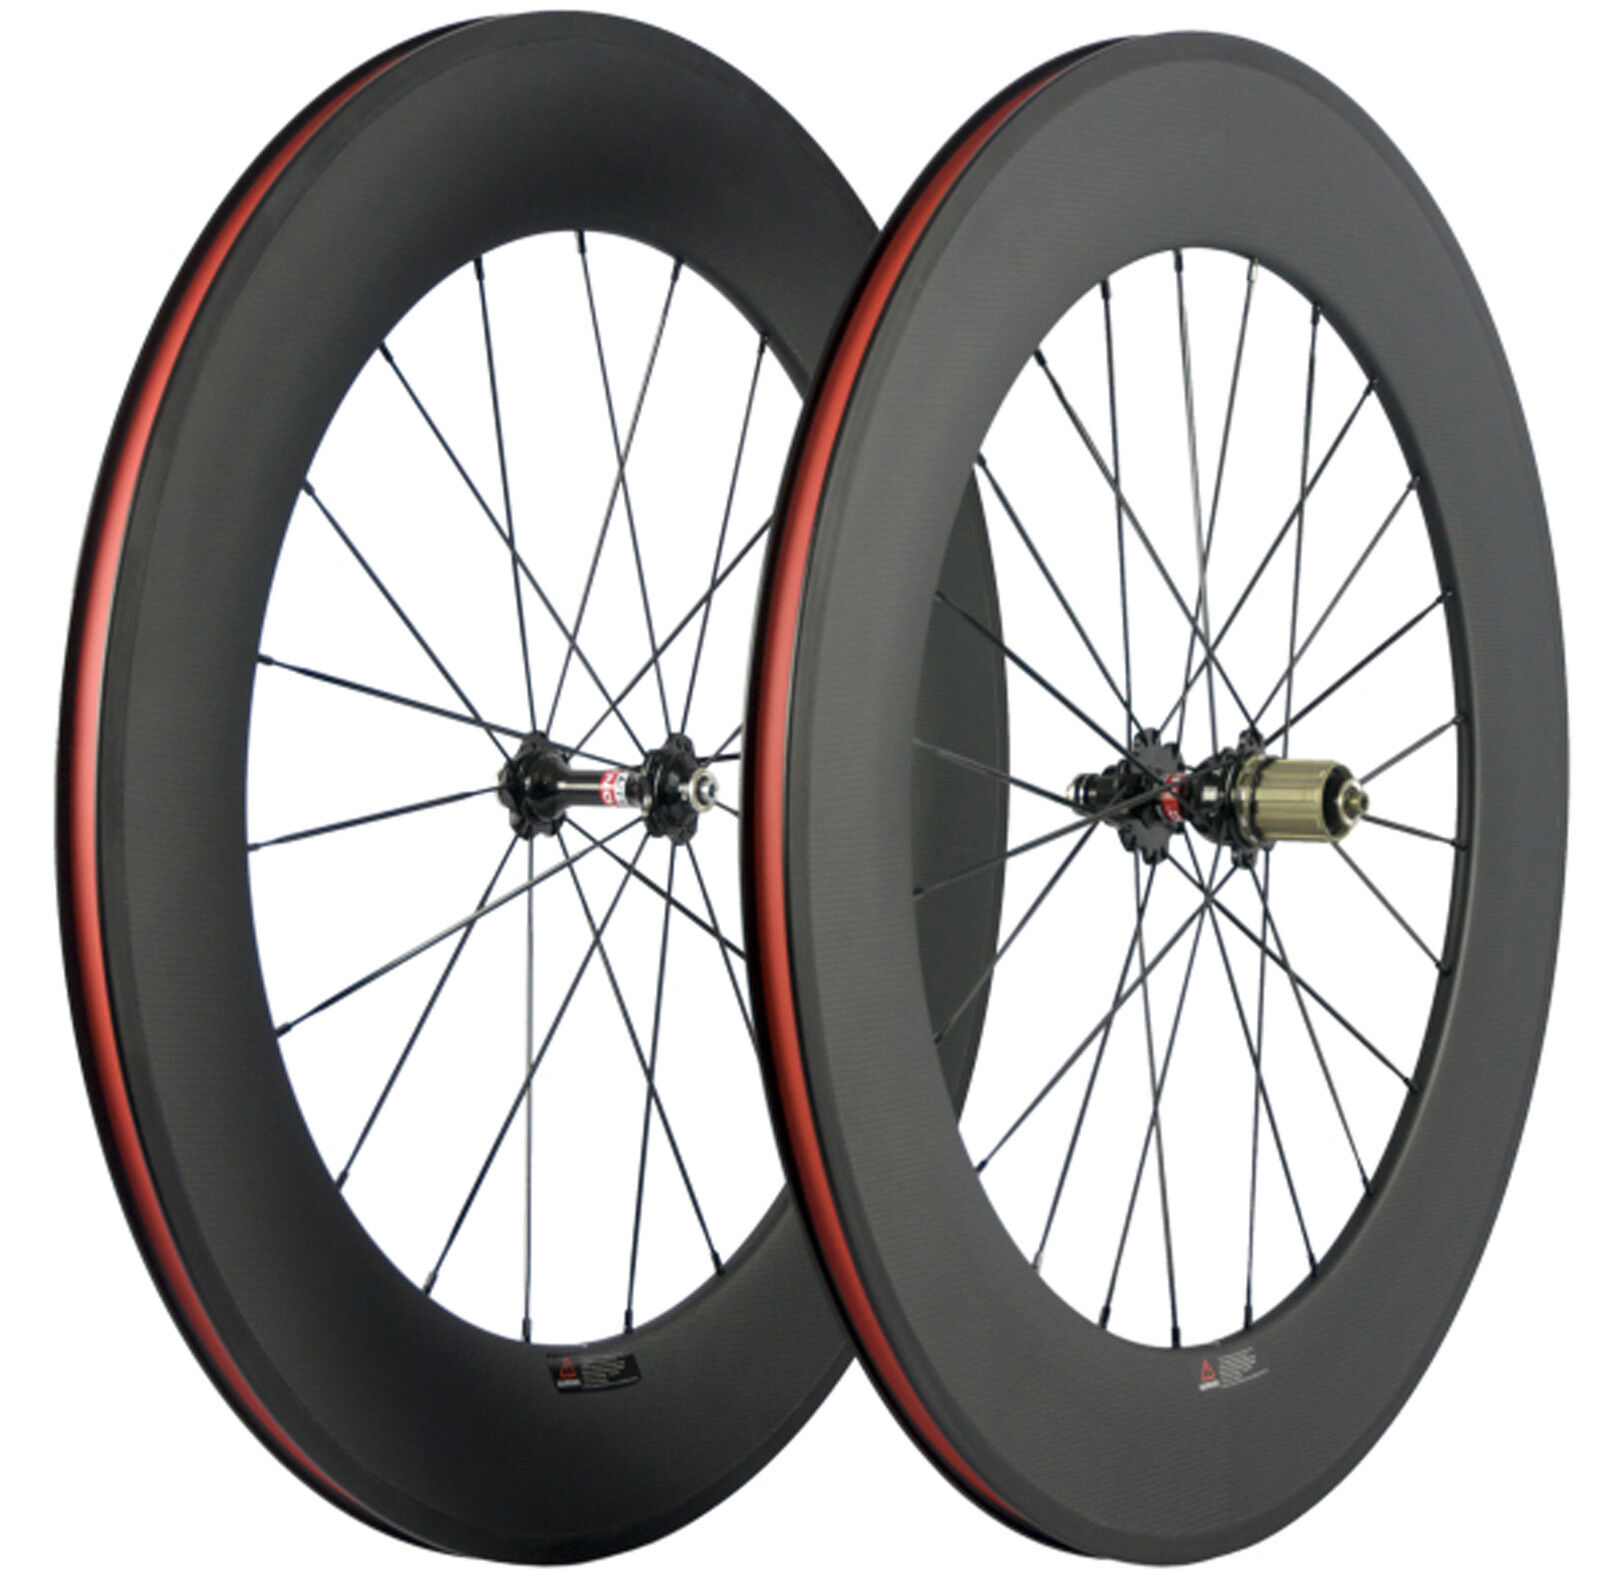 Carbon Wheels Road Bike 38 50 60 88mm Clincher  Shimano Campagnolo Hub 700C Wheel  factory direct and quick delivery